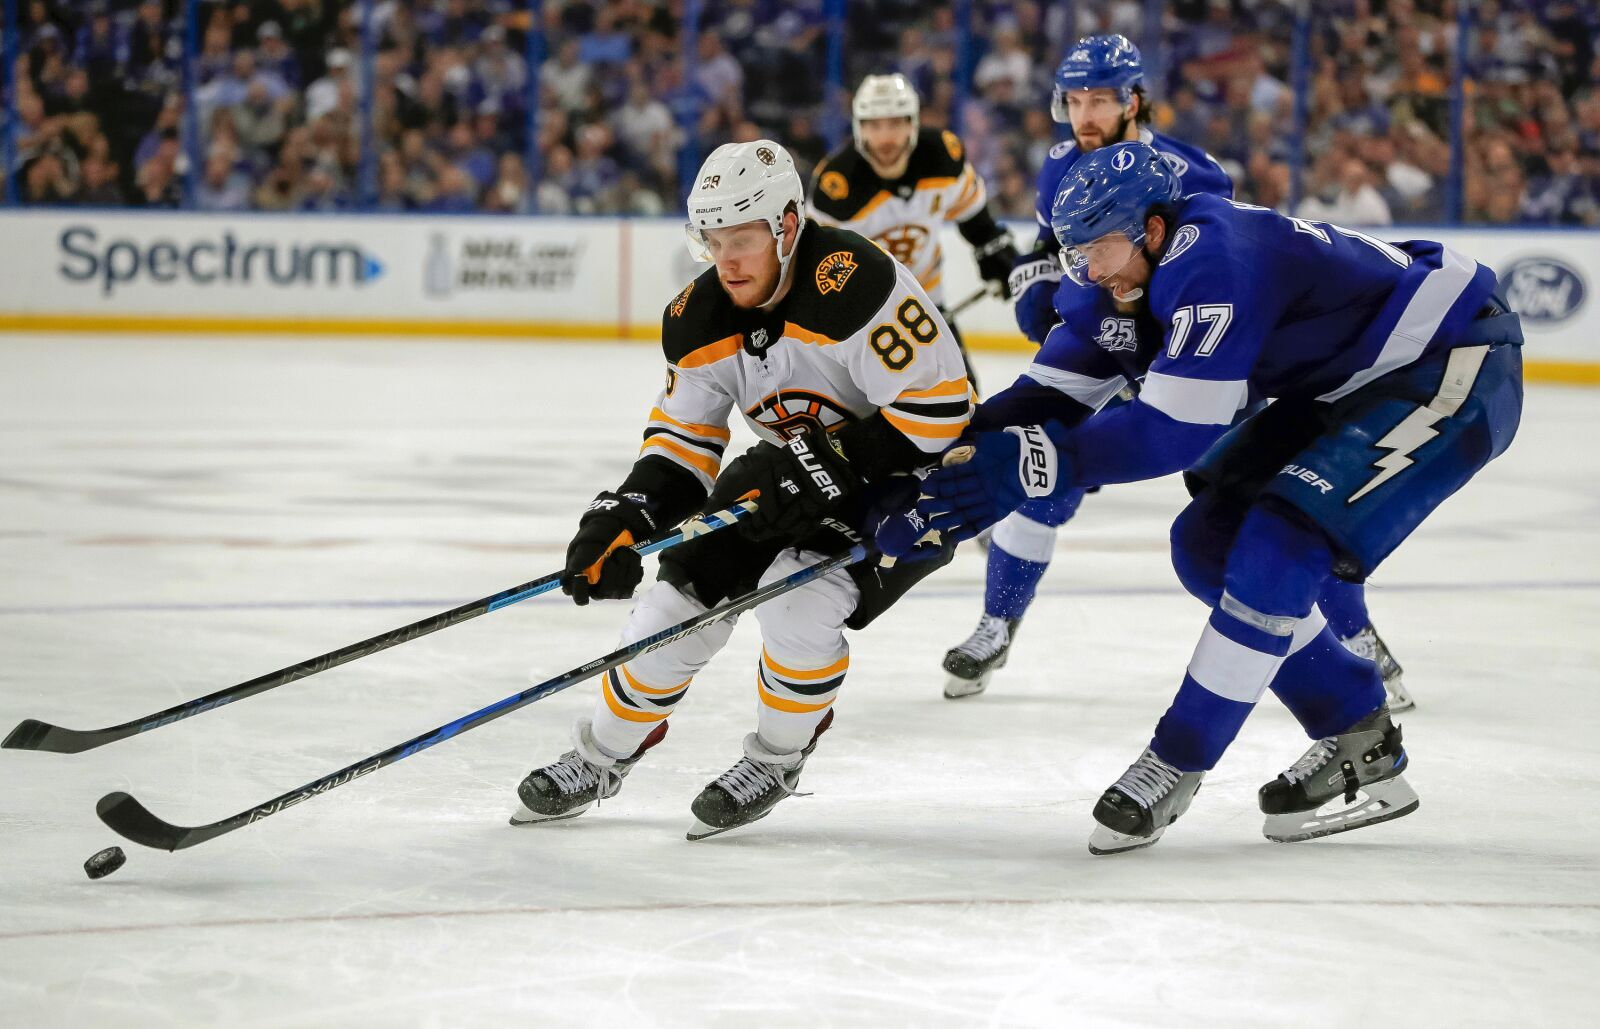 942424920-boston-bruins-v-tampa-bay-lightning.jpg